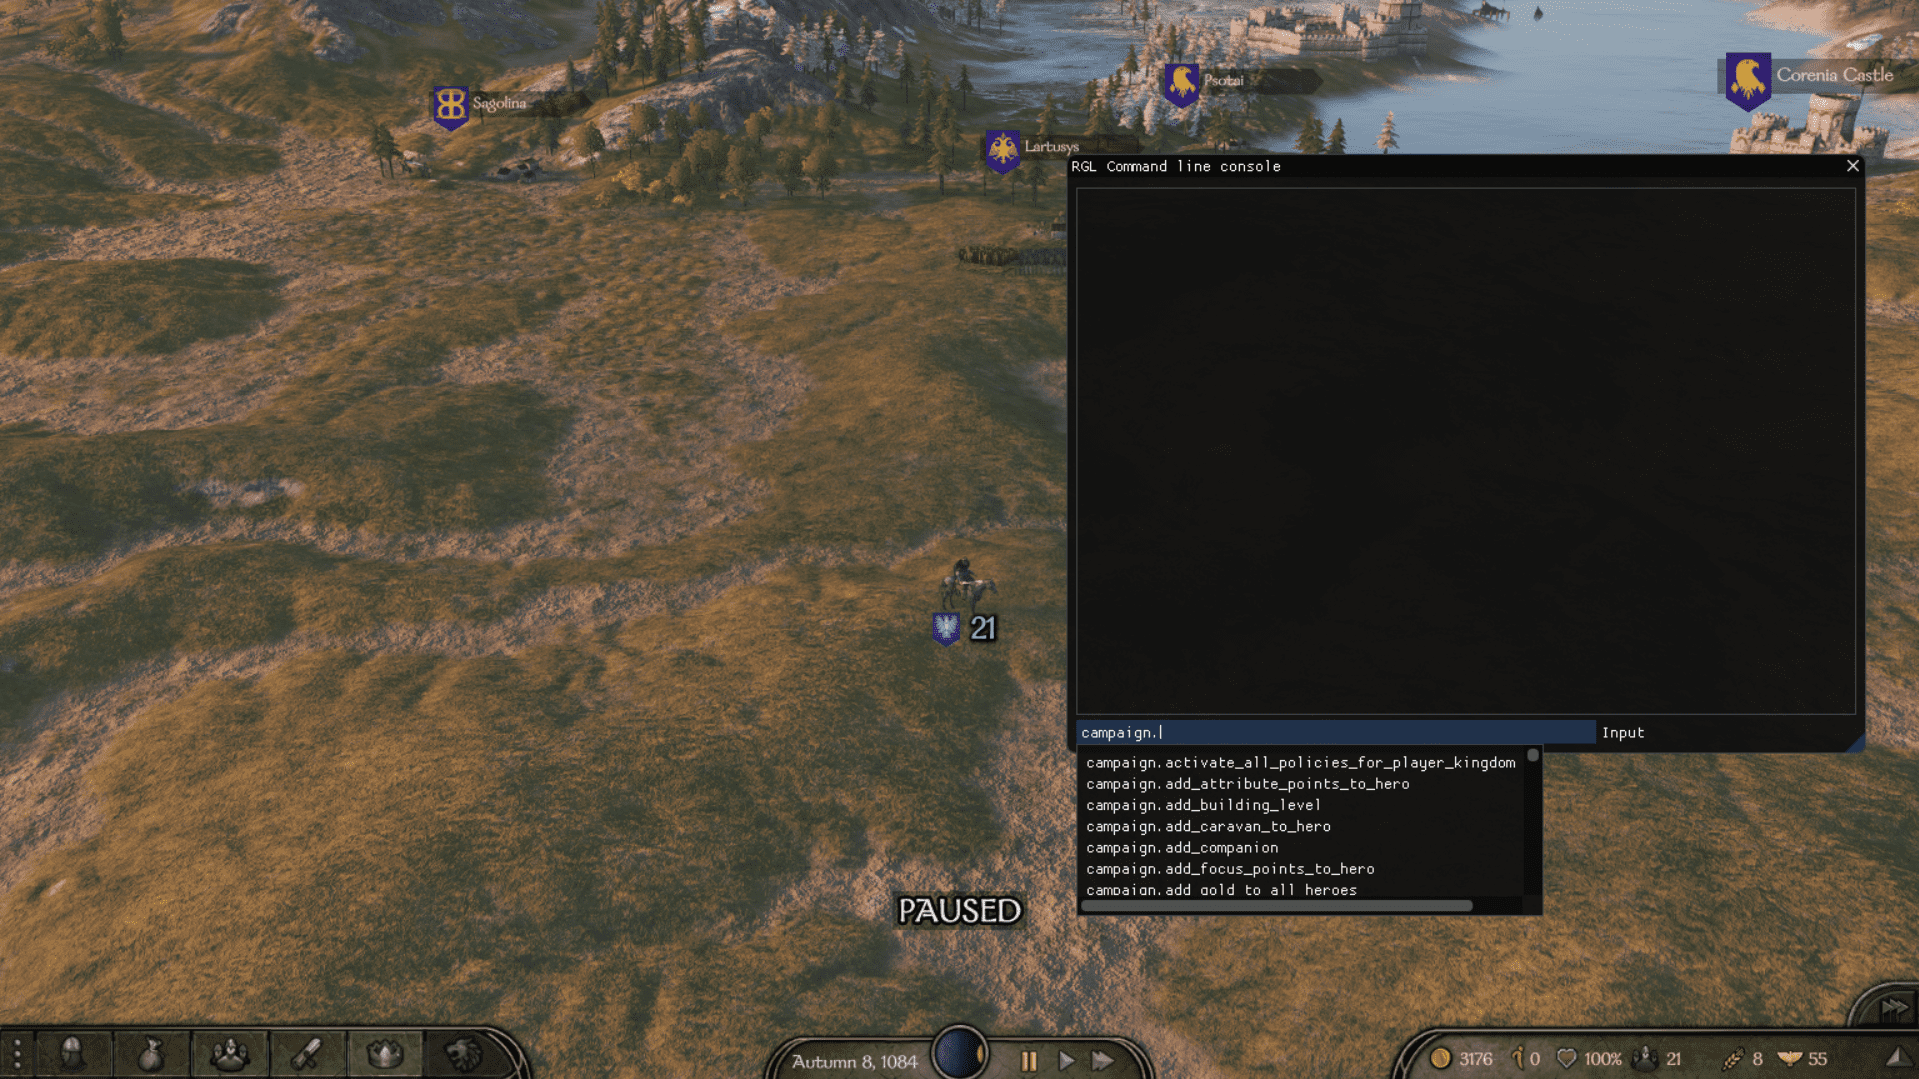 How To Install Mount And Blade Bannerlord 2 Developer Console Mod